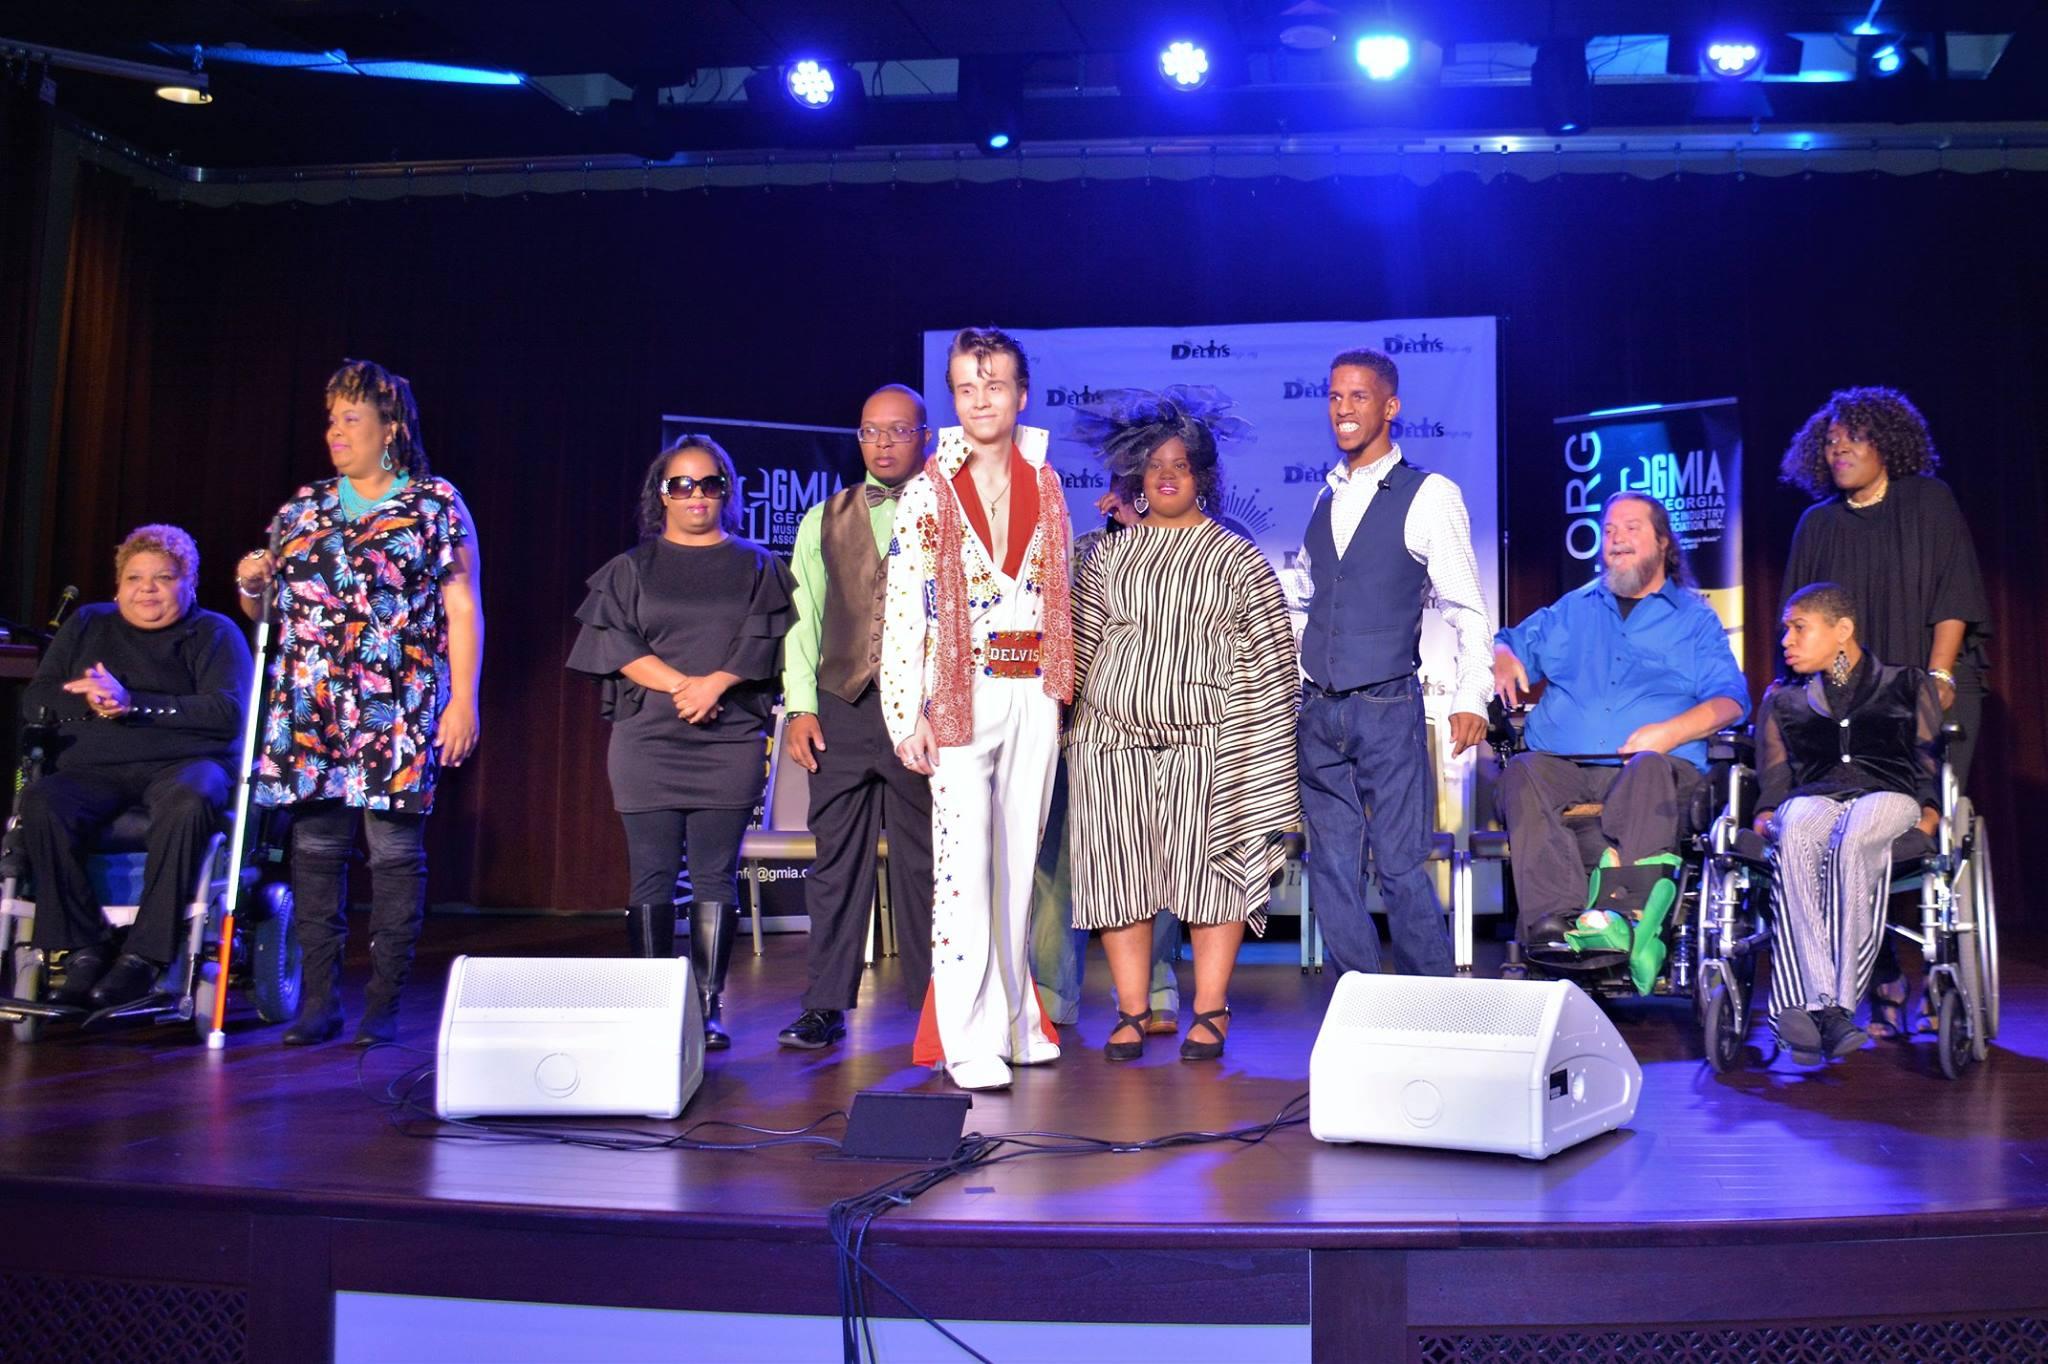 Talented performing artists with disabilities showcased at the SHOWAbility Event